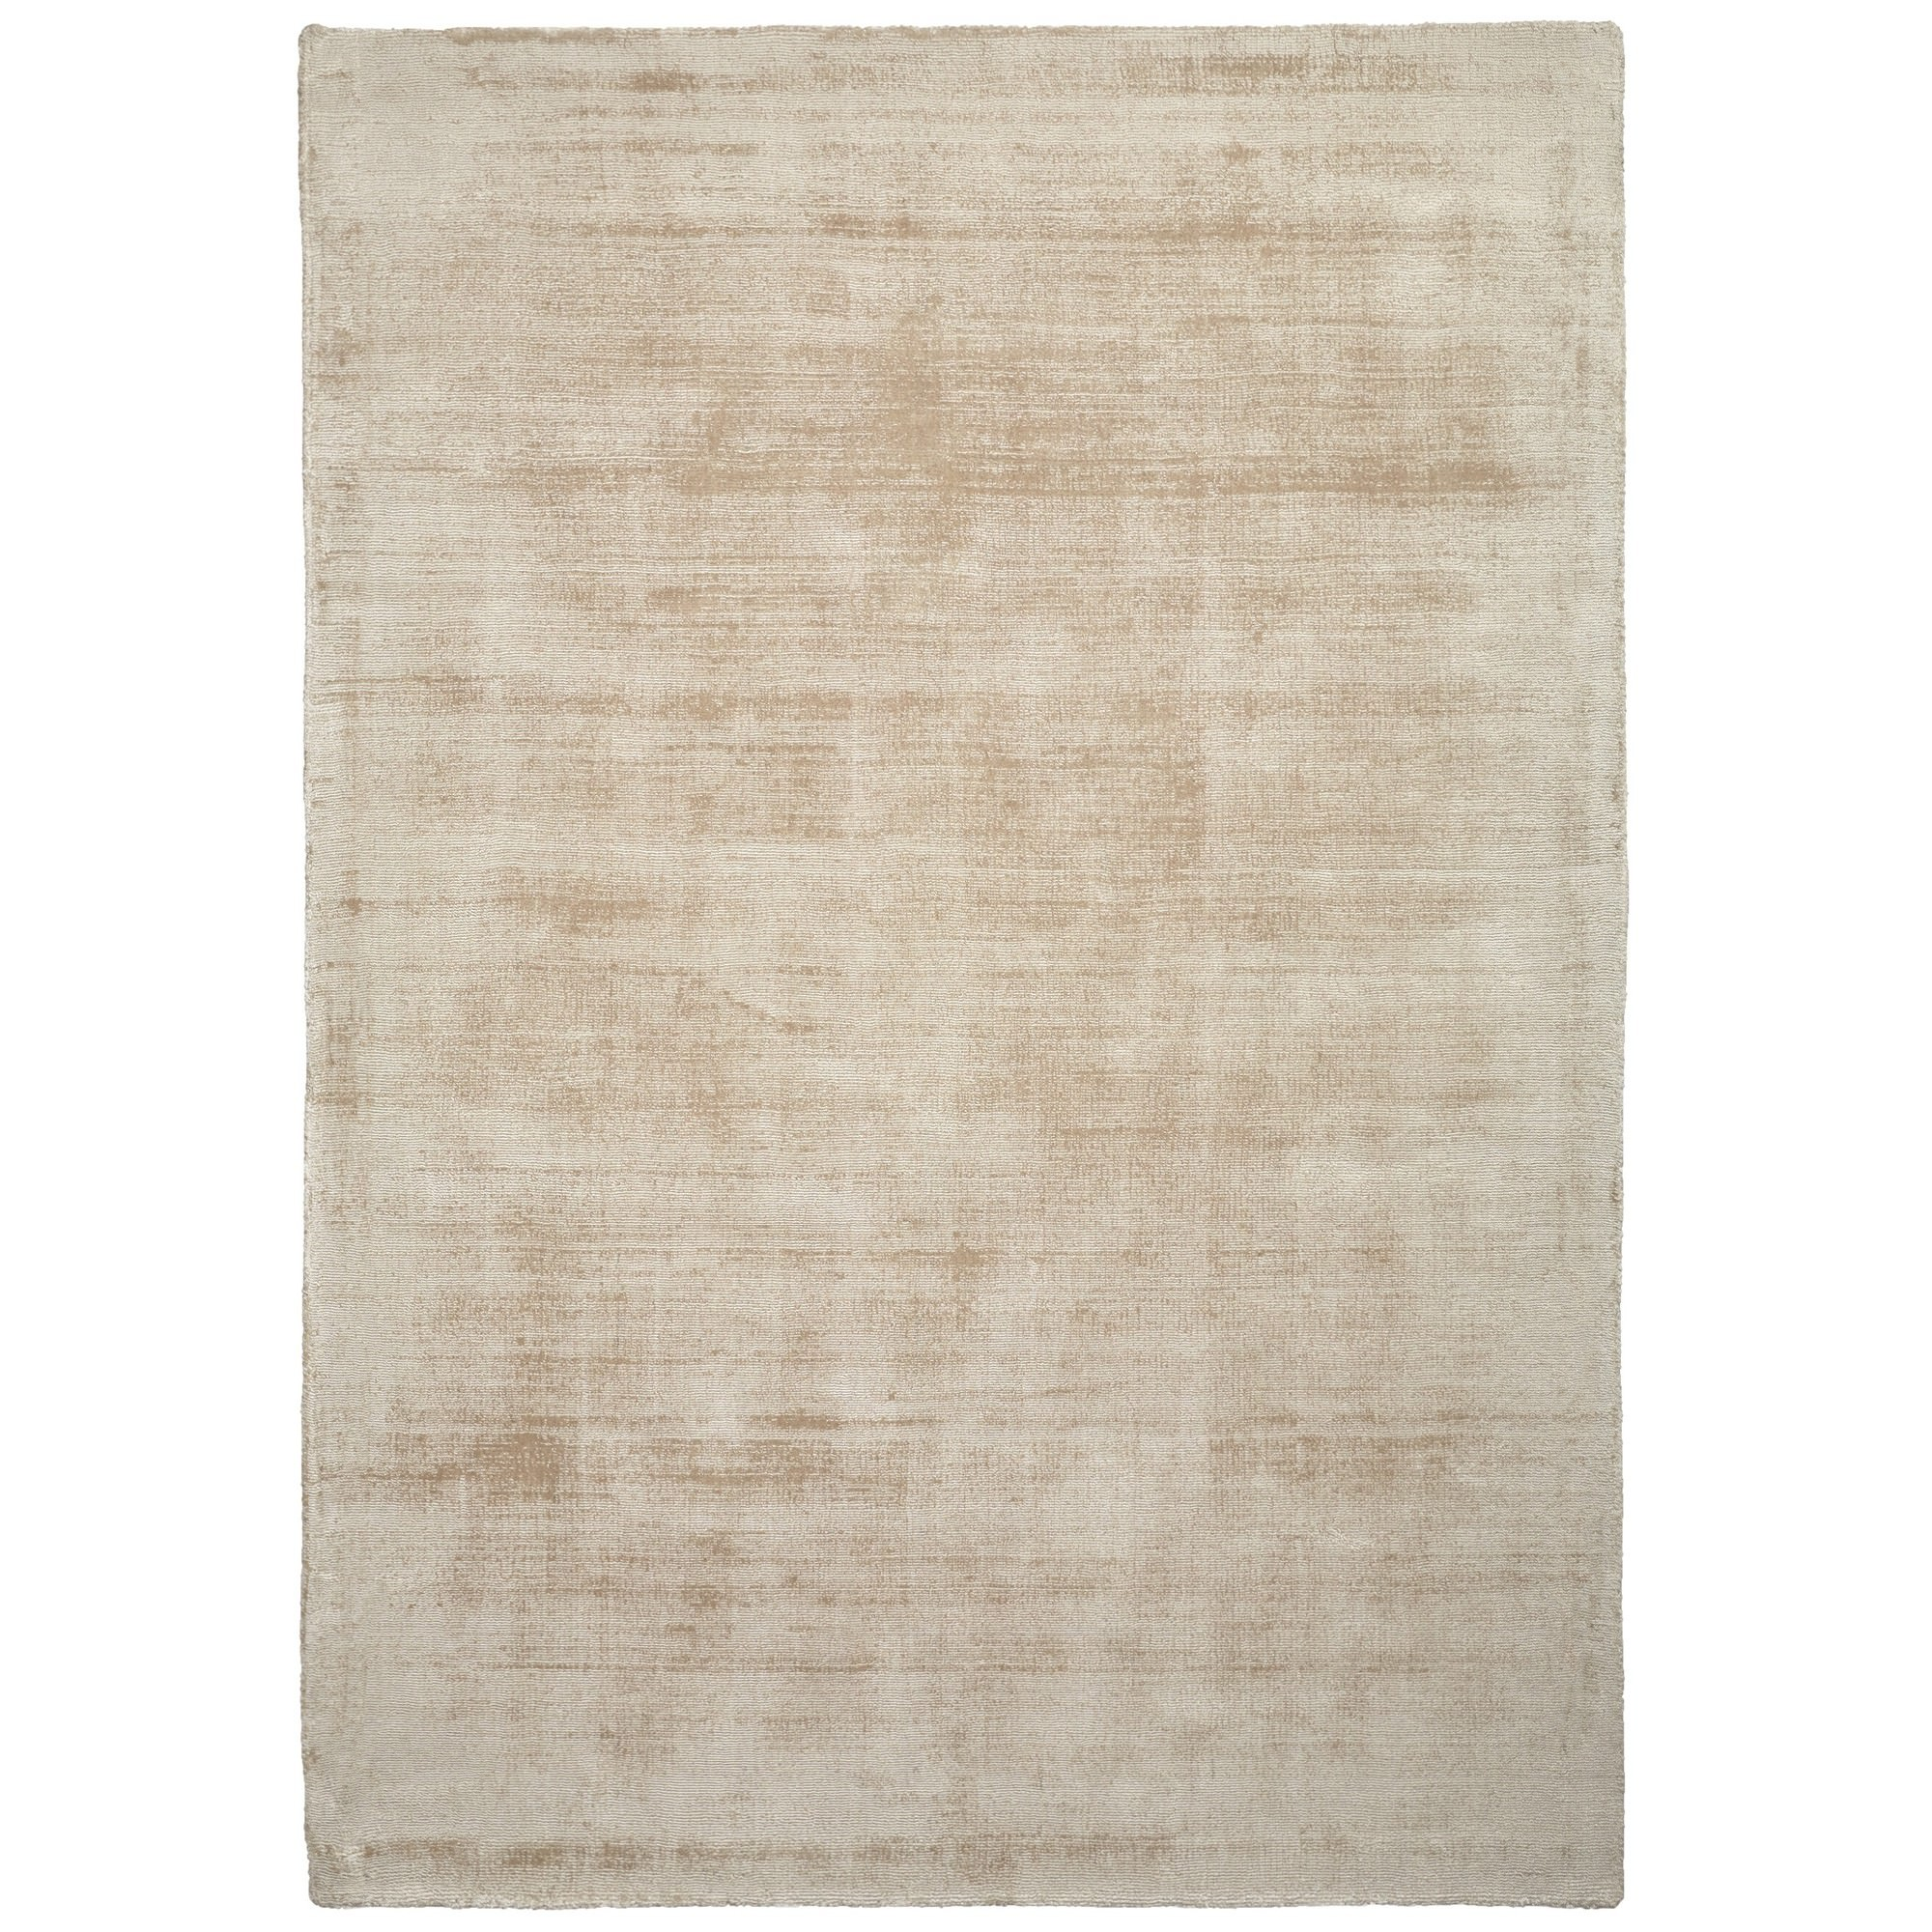 Luxe Modern Rug, 330x240cm, Pearl